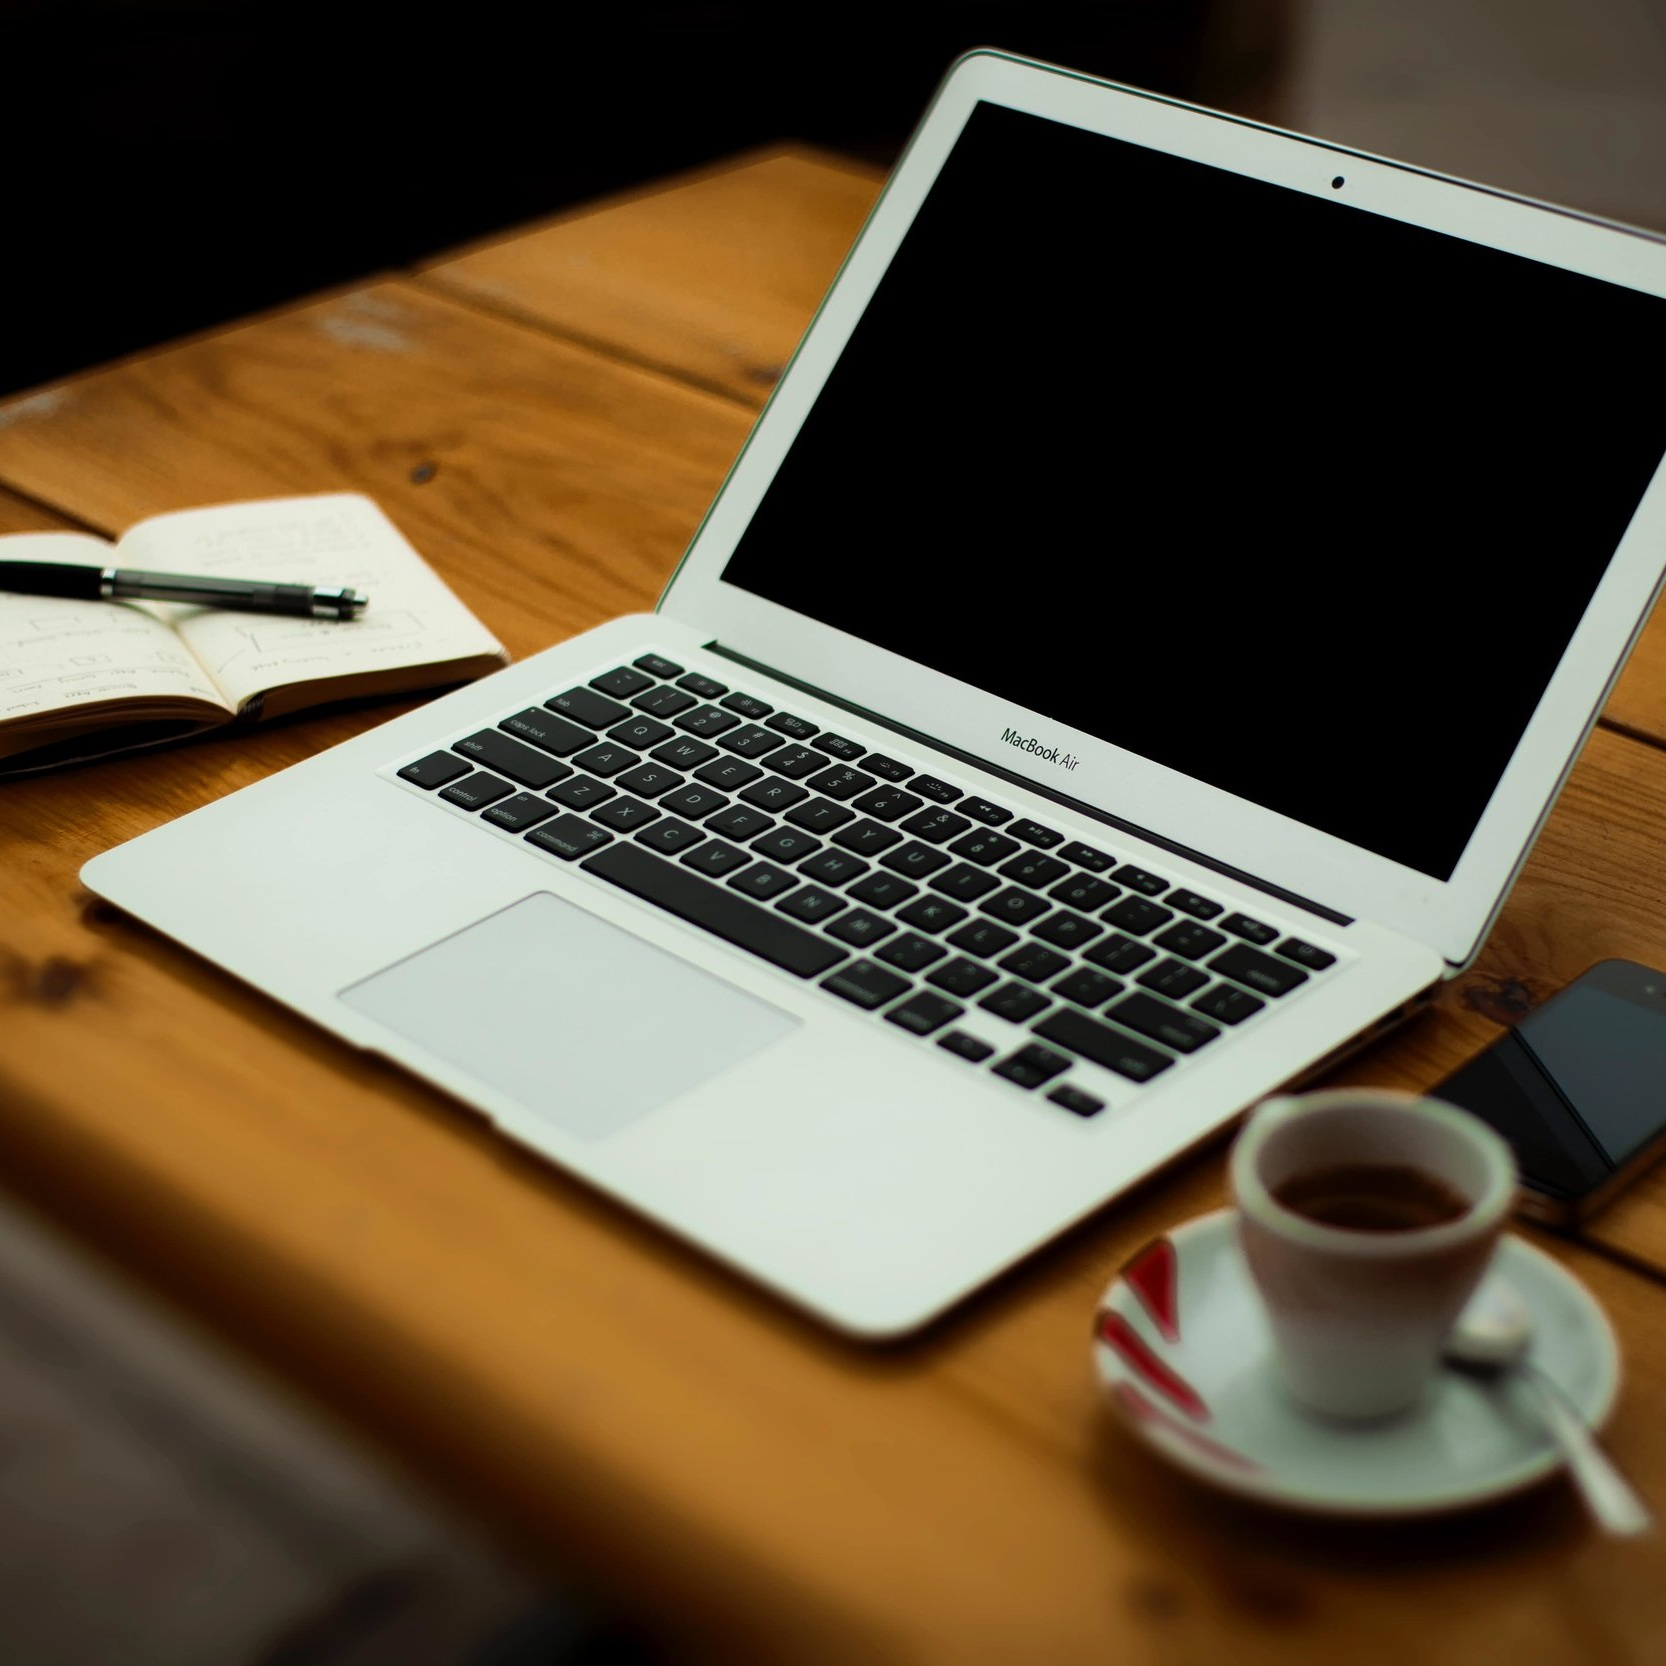 MacBook laptop with black screen and a notebook beside it.